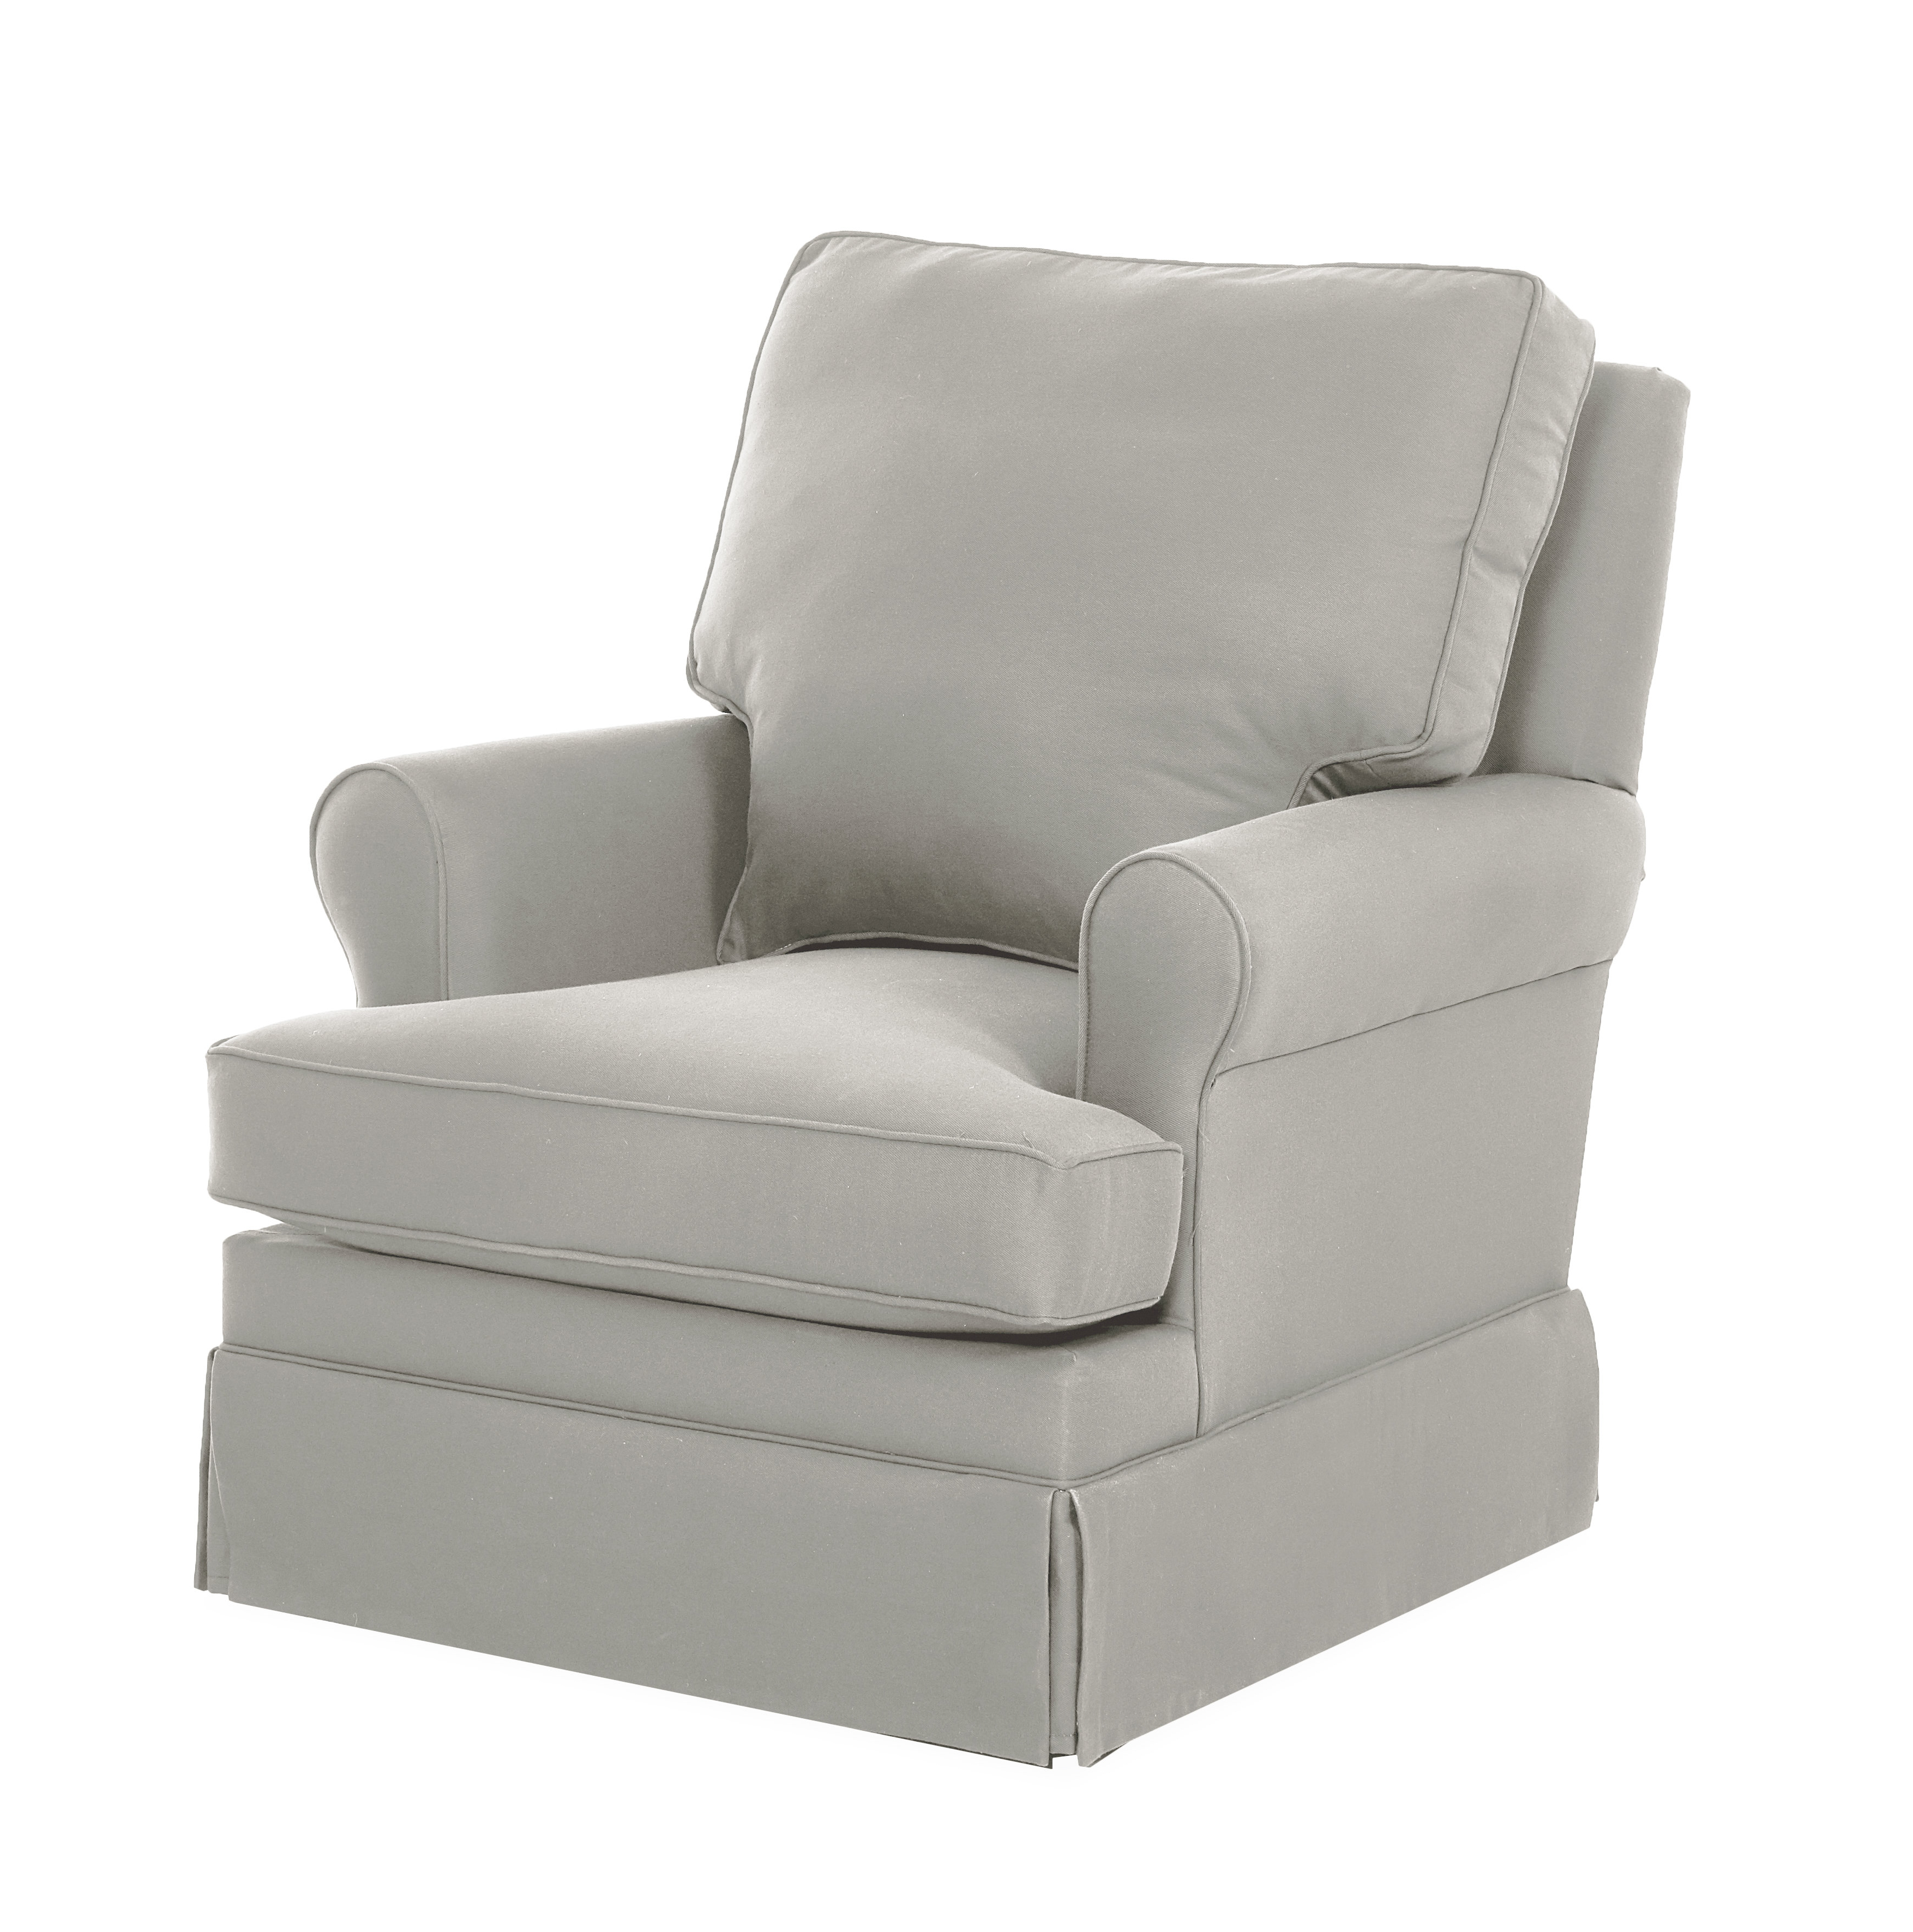 Wayfair Custom Upholstery™ Gwinnett Swivel Glider (View 2 of 20)